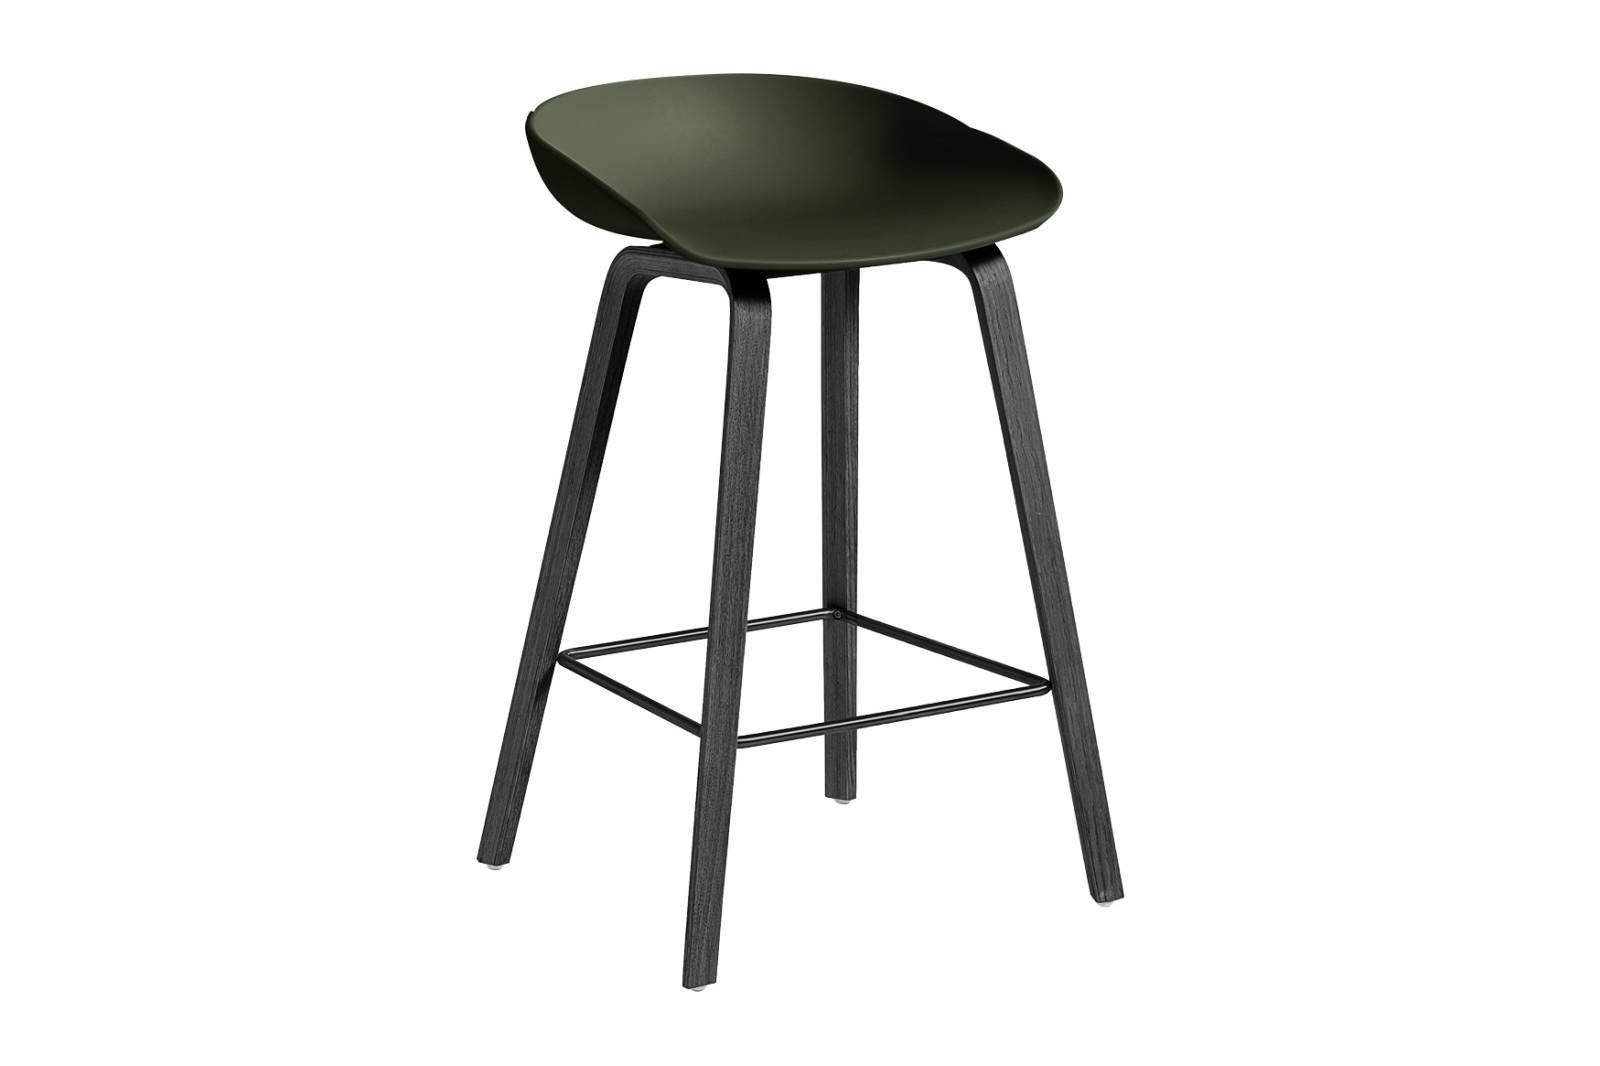 About A Stool AAS32 Black Stained Oak Base, Green Seat, Low, Black Powder Coated Steel